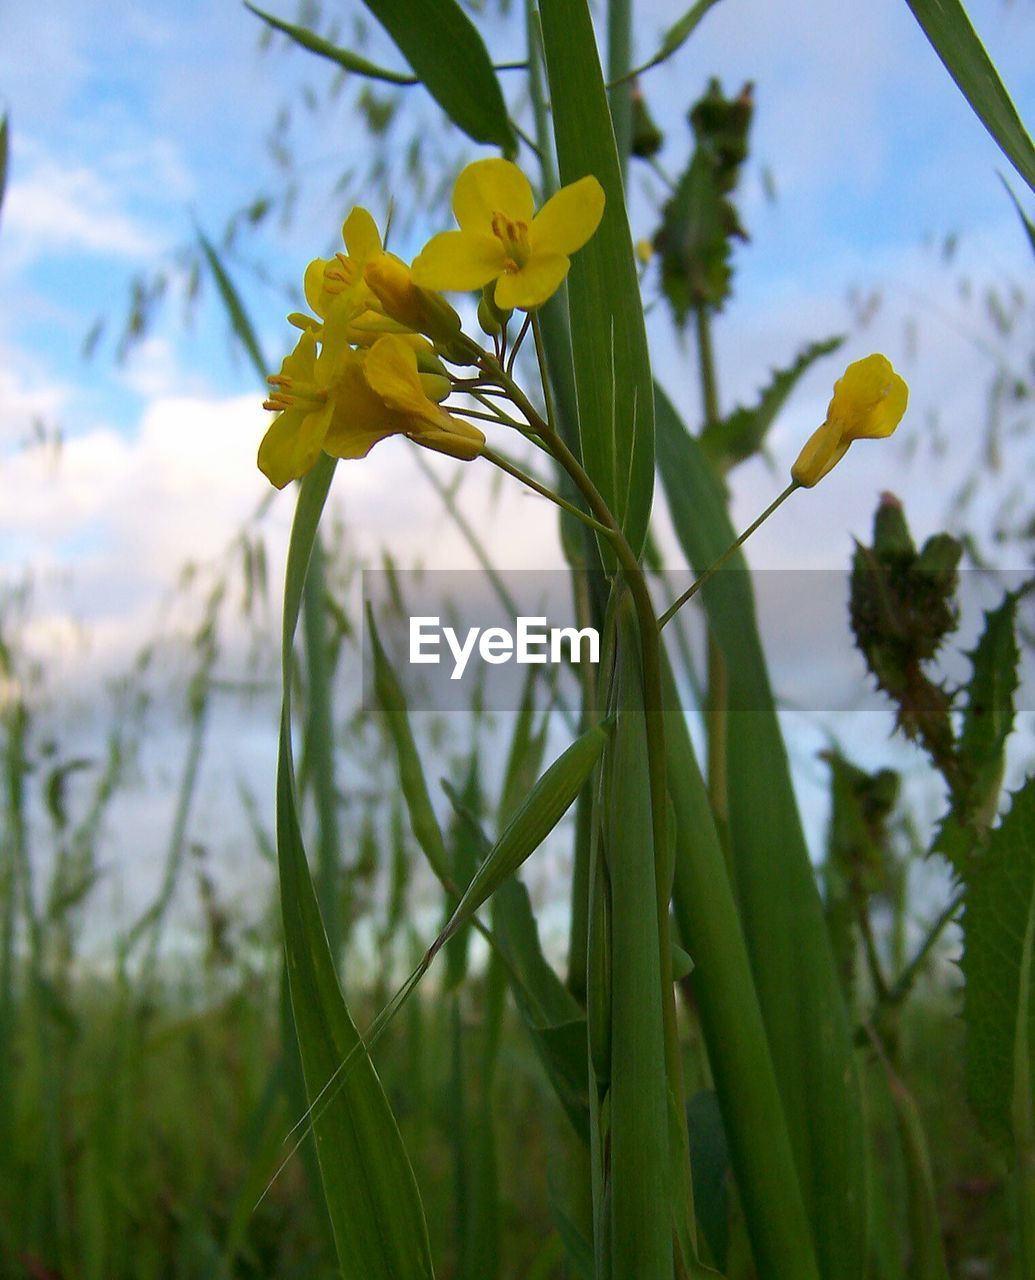 flower, growth, nature, beauty in nature, plant, petal, yellow, fragility, freshness, blooming, flower head, daffodil, no people, outdoors, day, close-up, sky